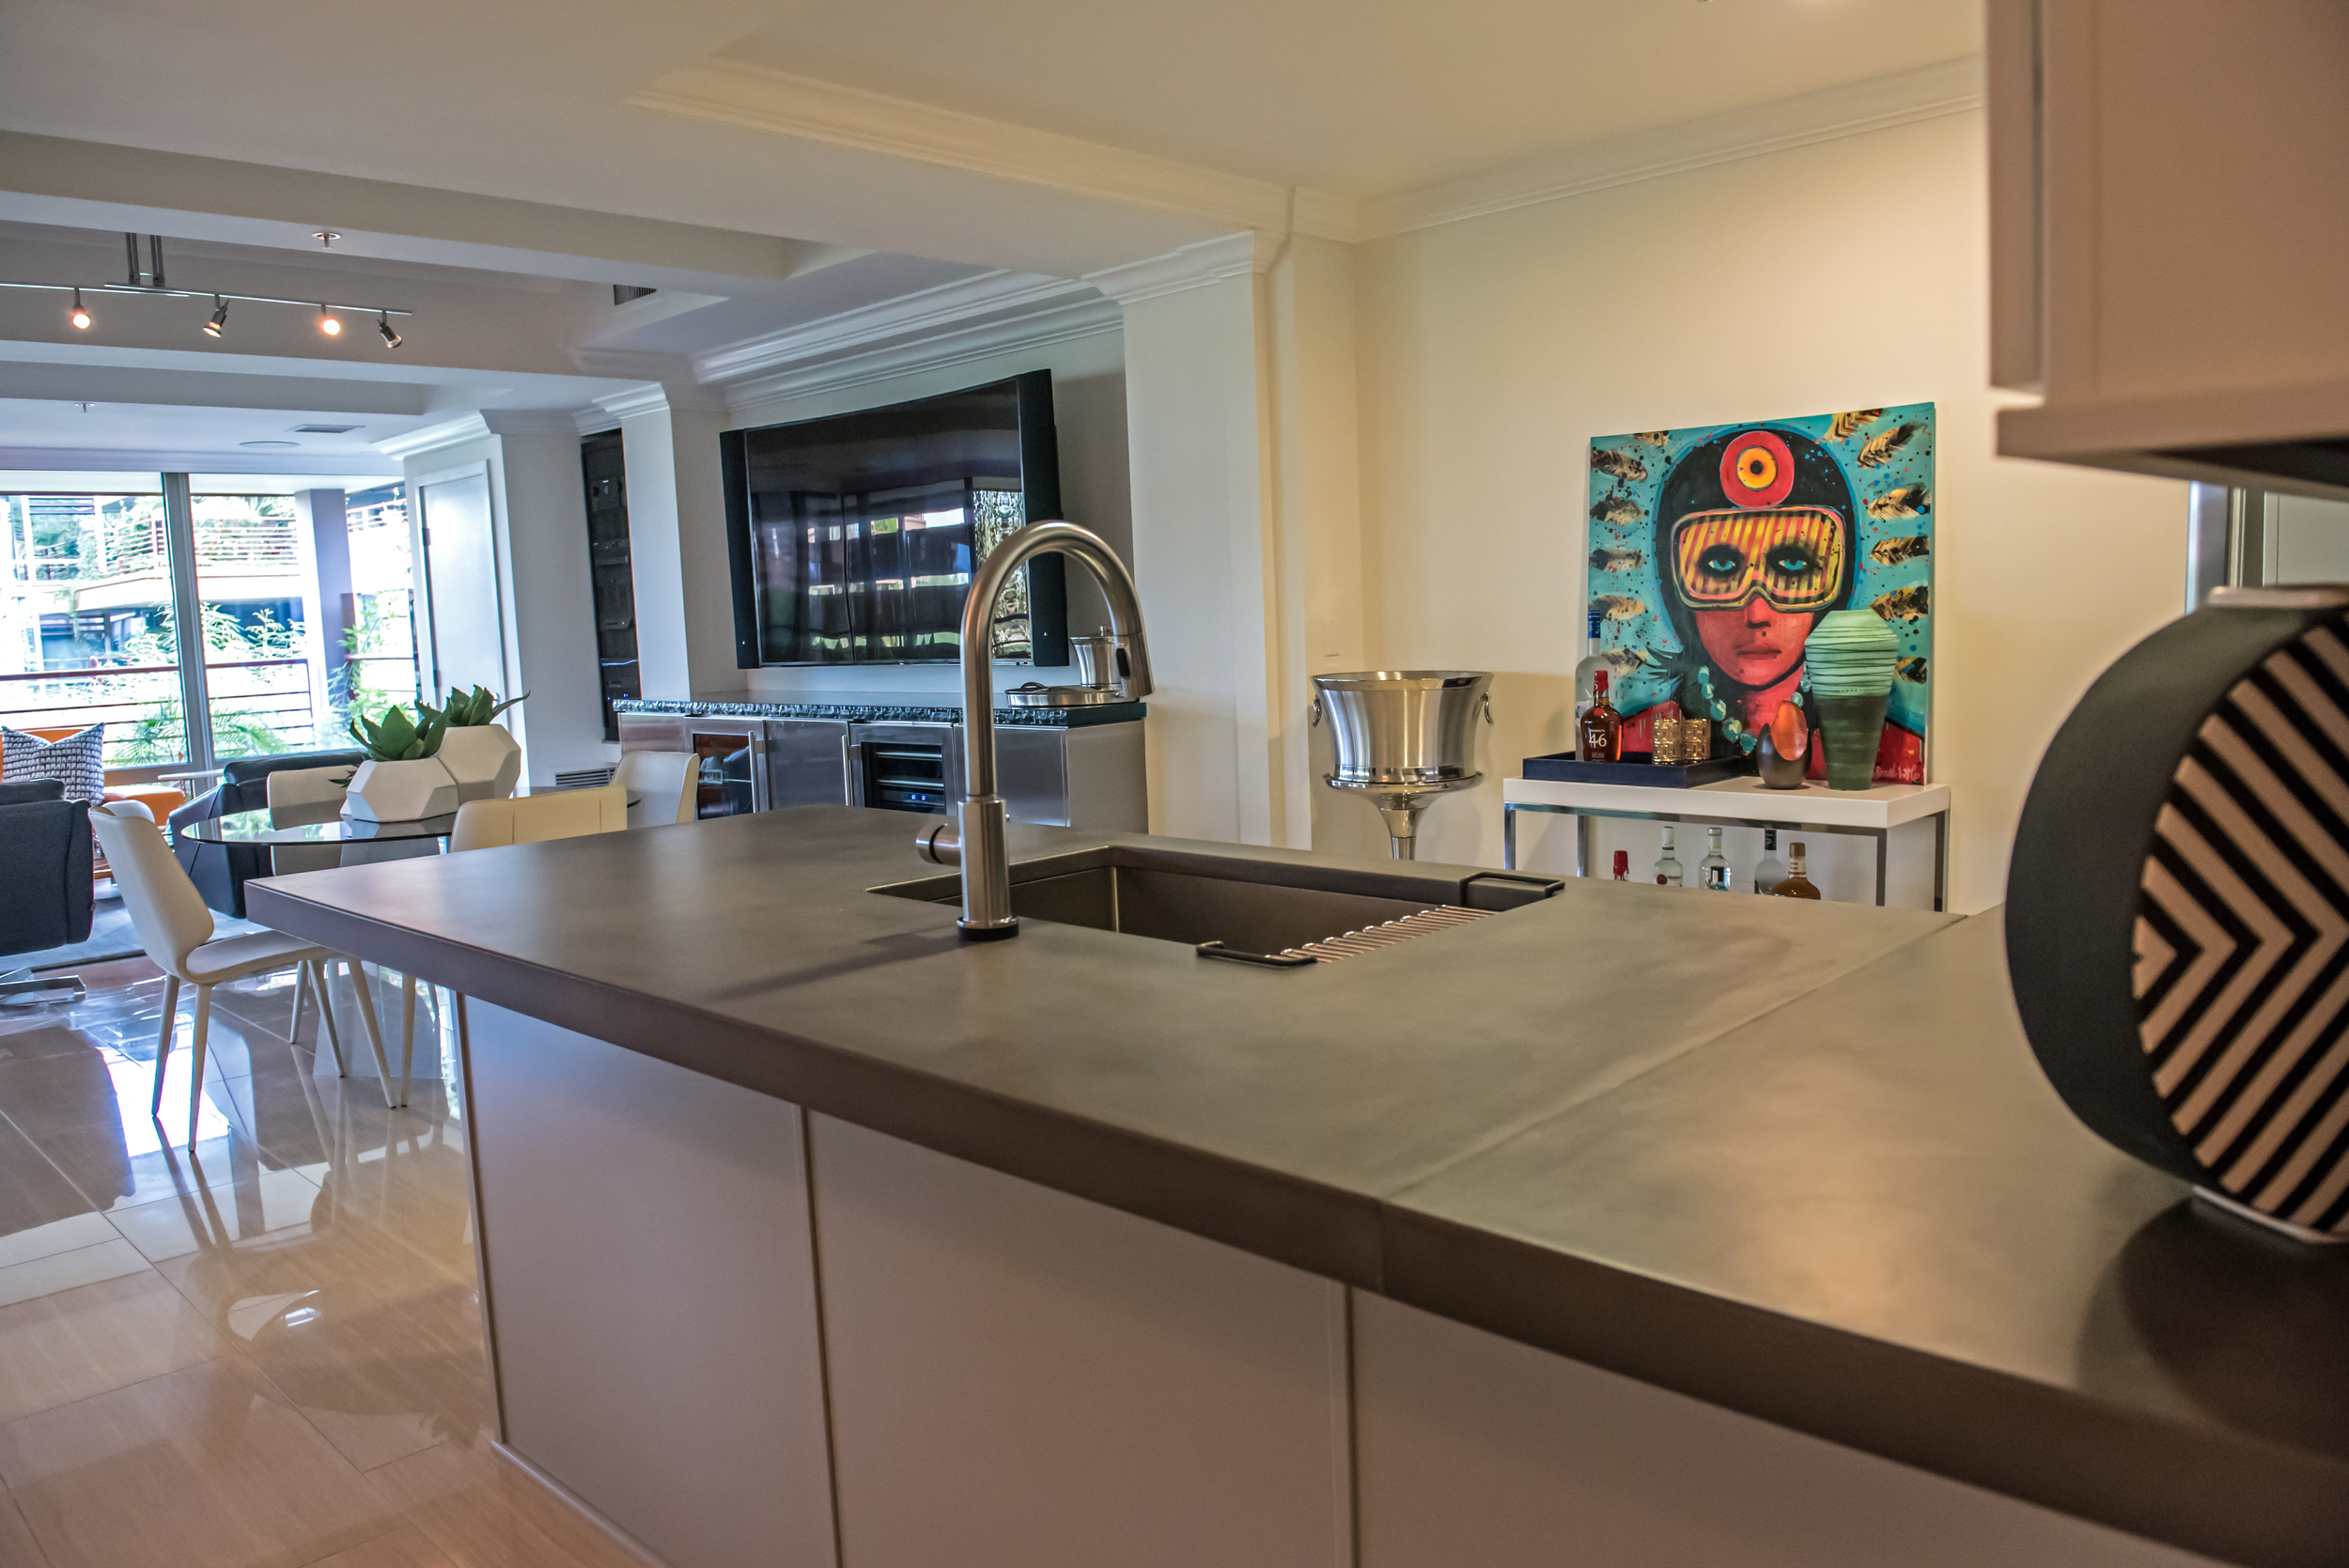 11-Kitchen+Remodel+Modern+Contemporary+Condo+Scottsdale+Optima+Camelview.jpg